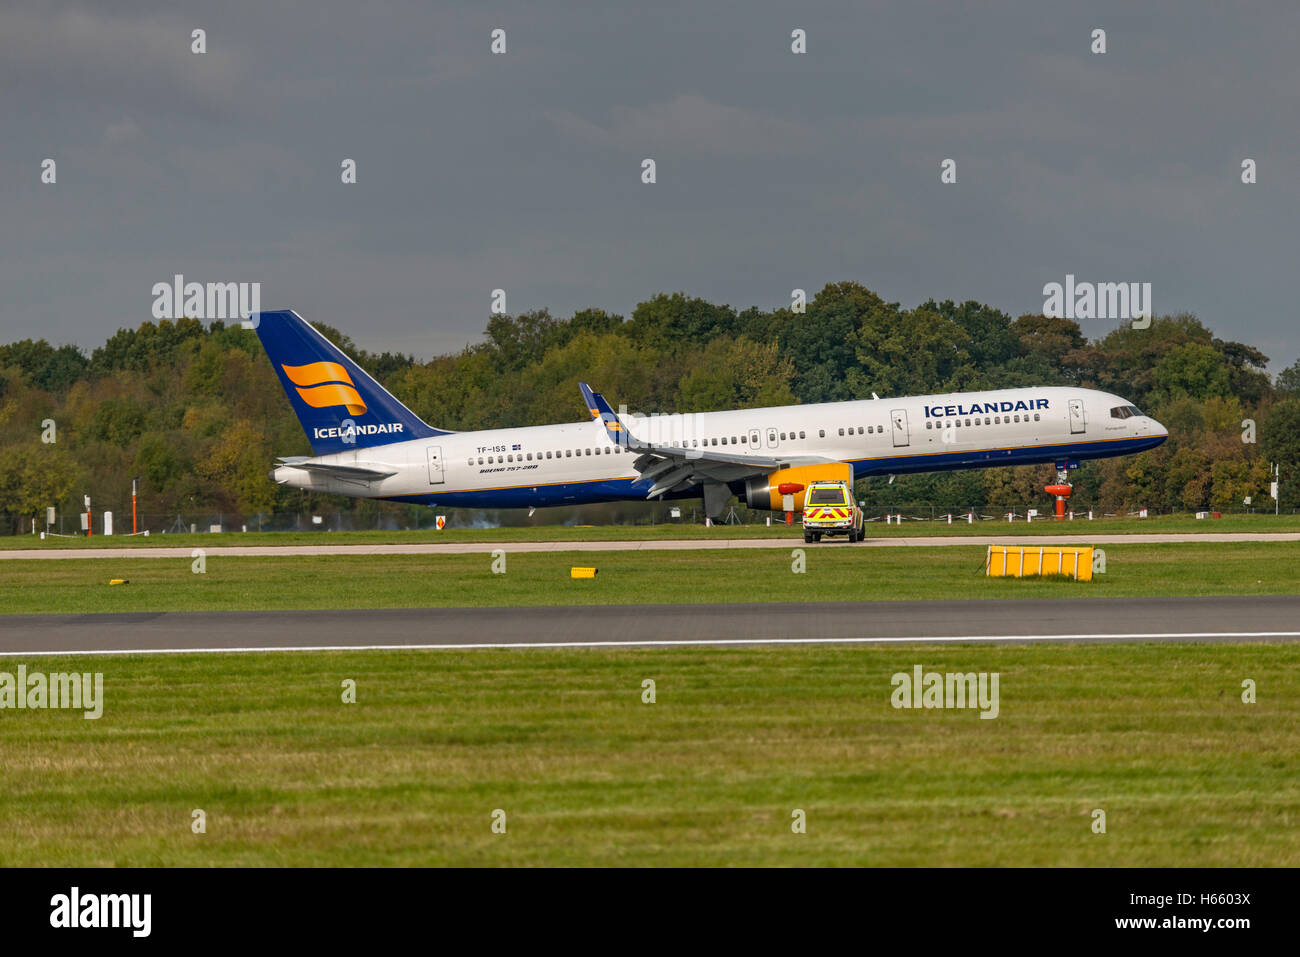 TF-ISS Icelandair Boeing 757-223 Manchester Airport England.Uk Landing, arrivals. - Stock Image